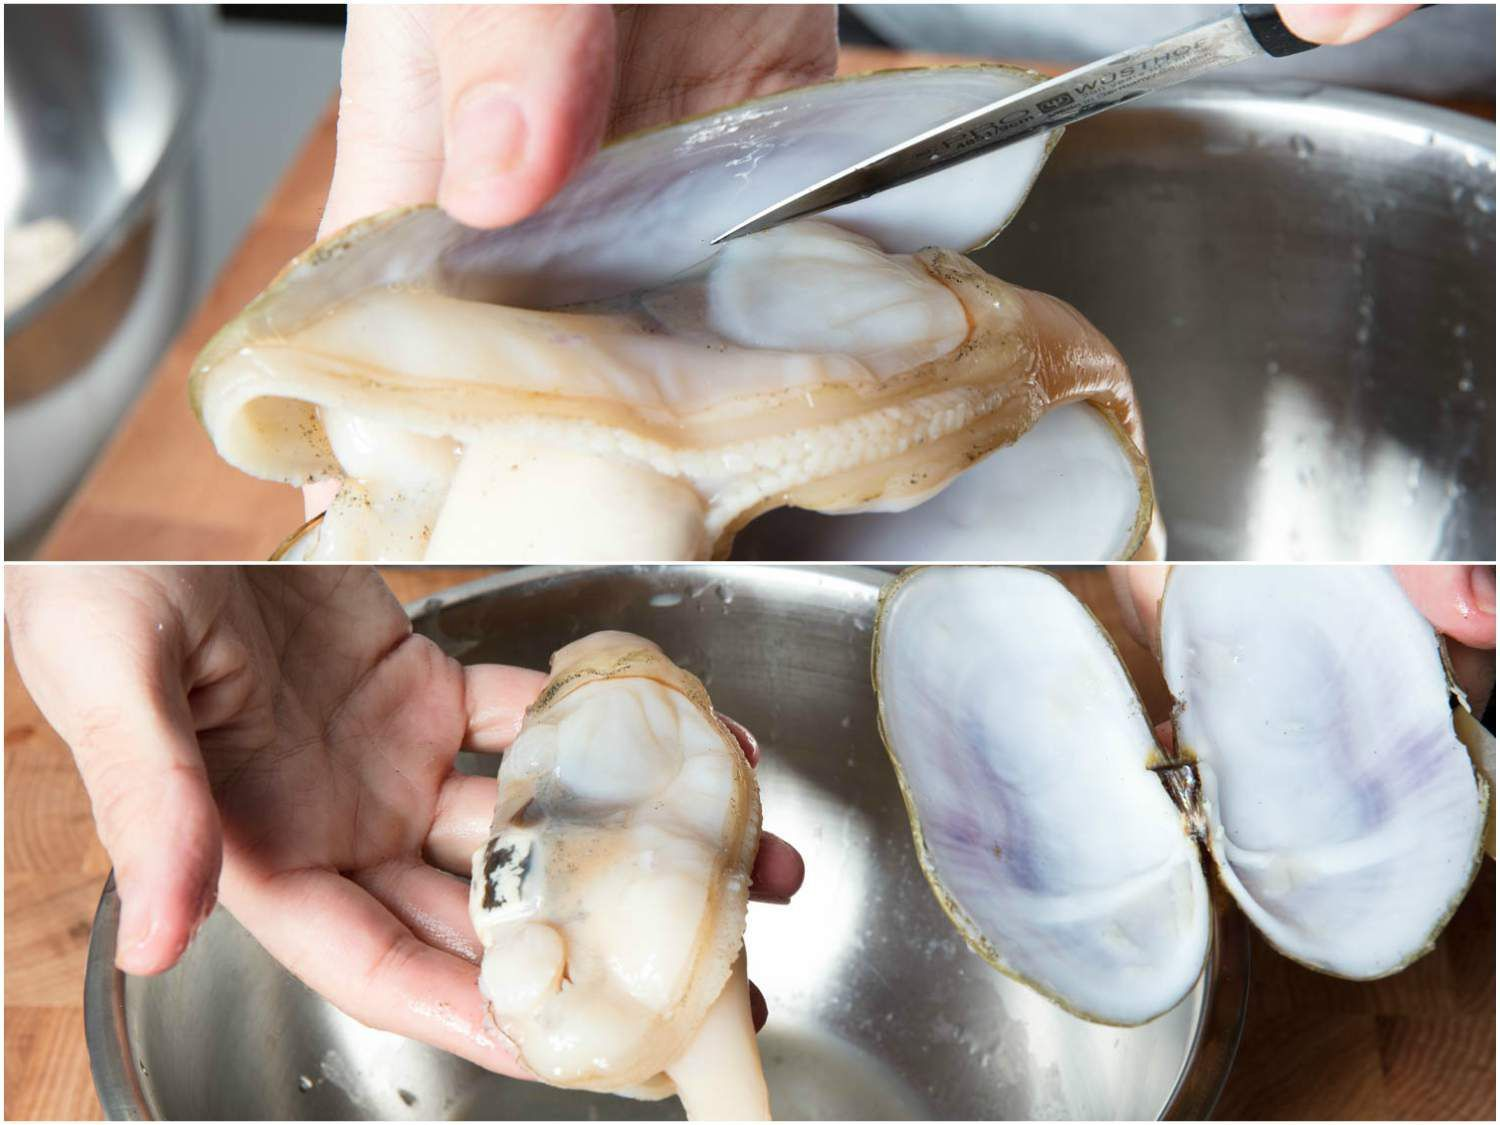 Collage of removing the razor clam from its shell: sliding a paring knife along shell to remove clam, freed whole clam in hand